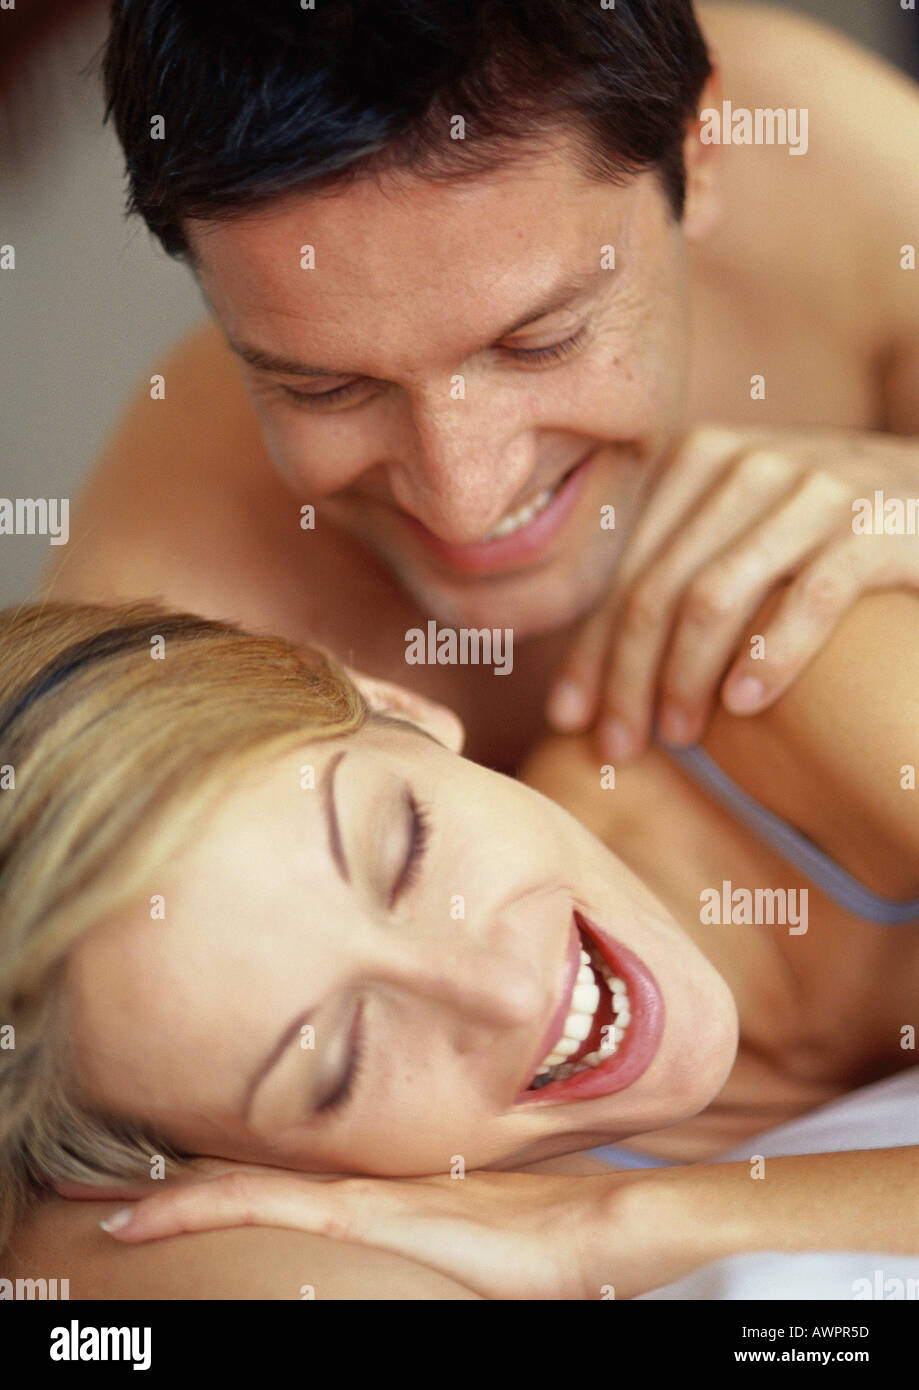 Couple lying on bed, smiling - Stock Image